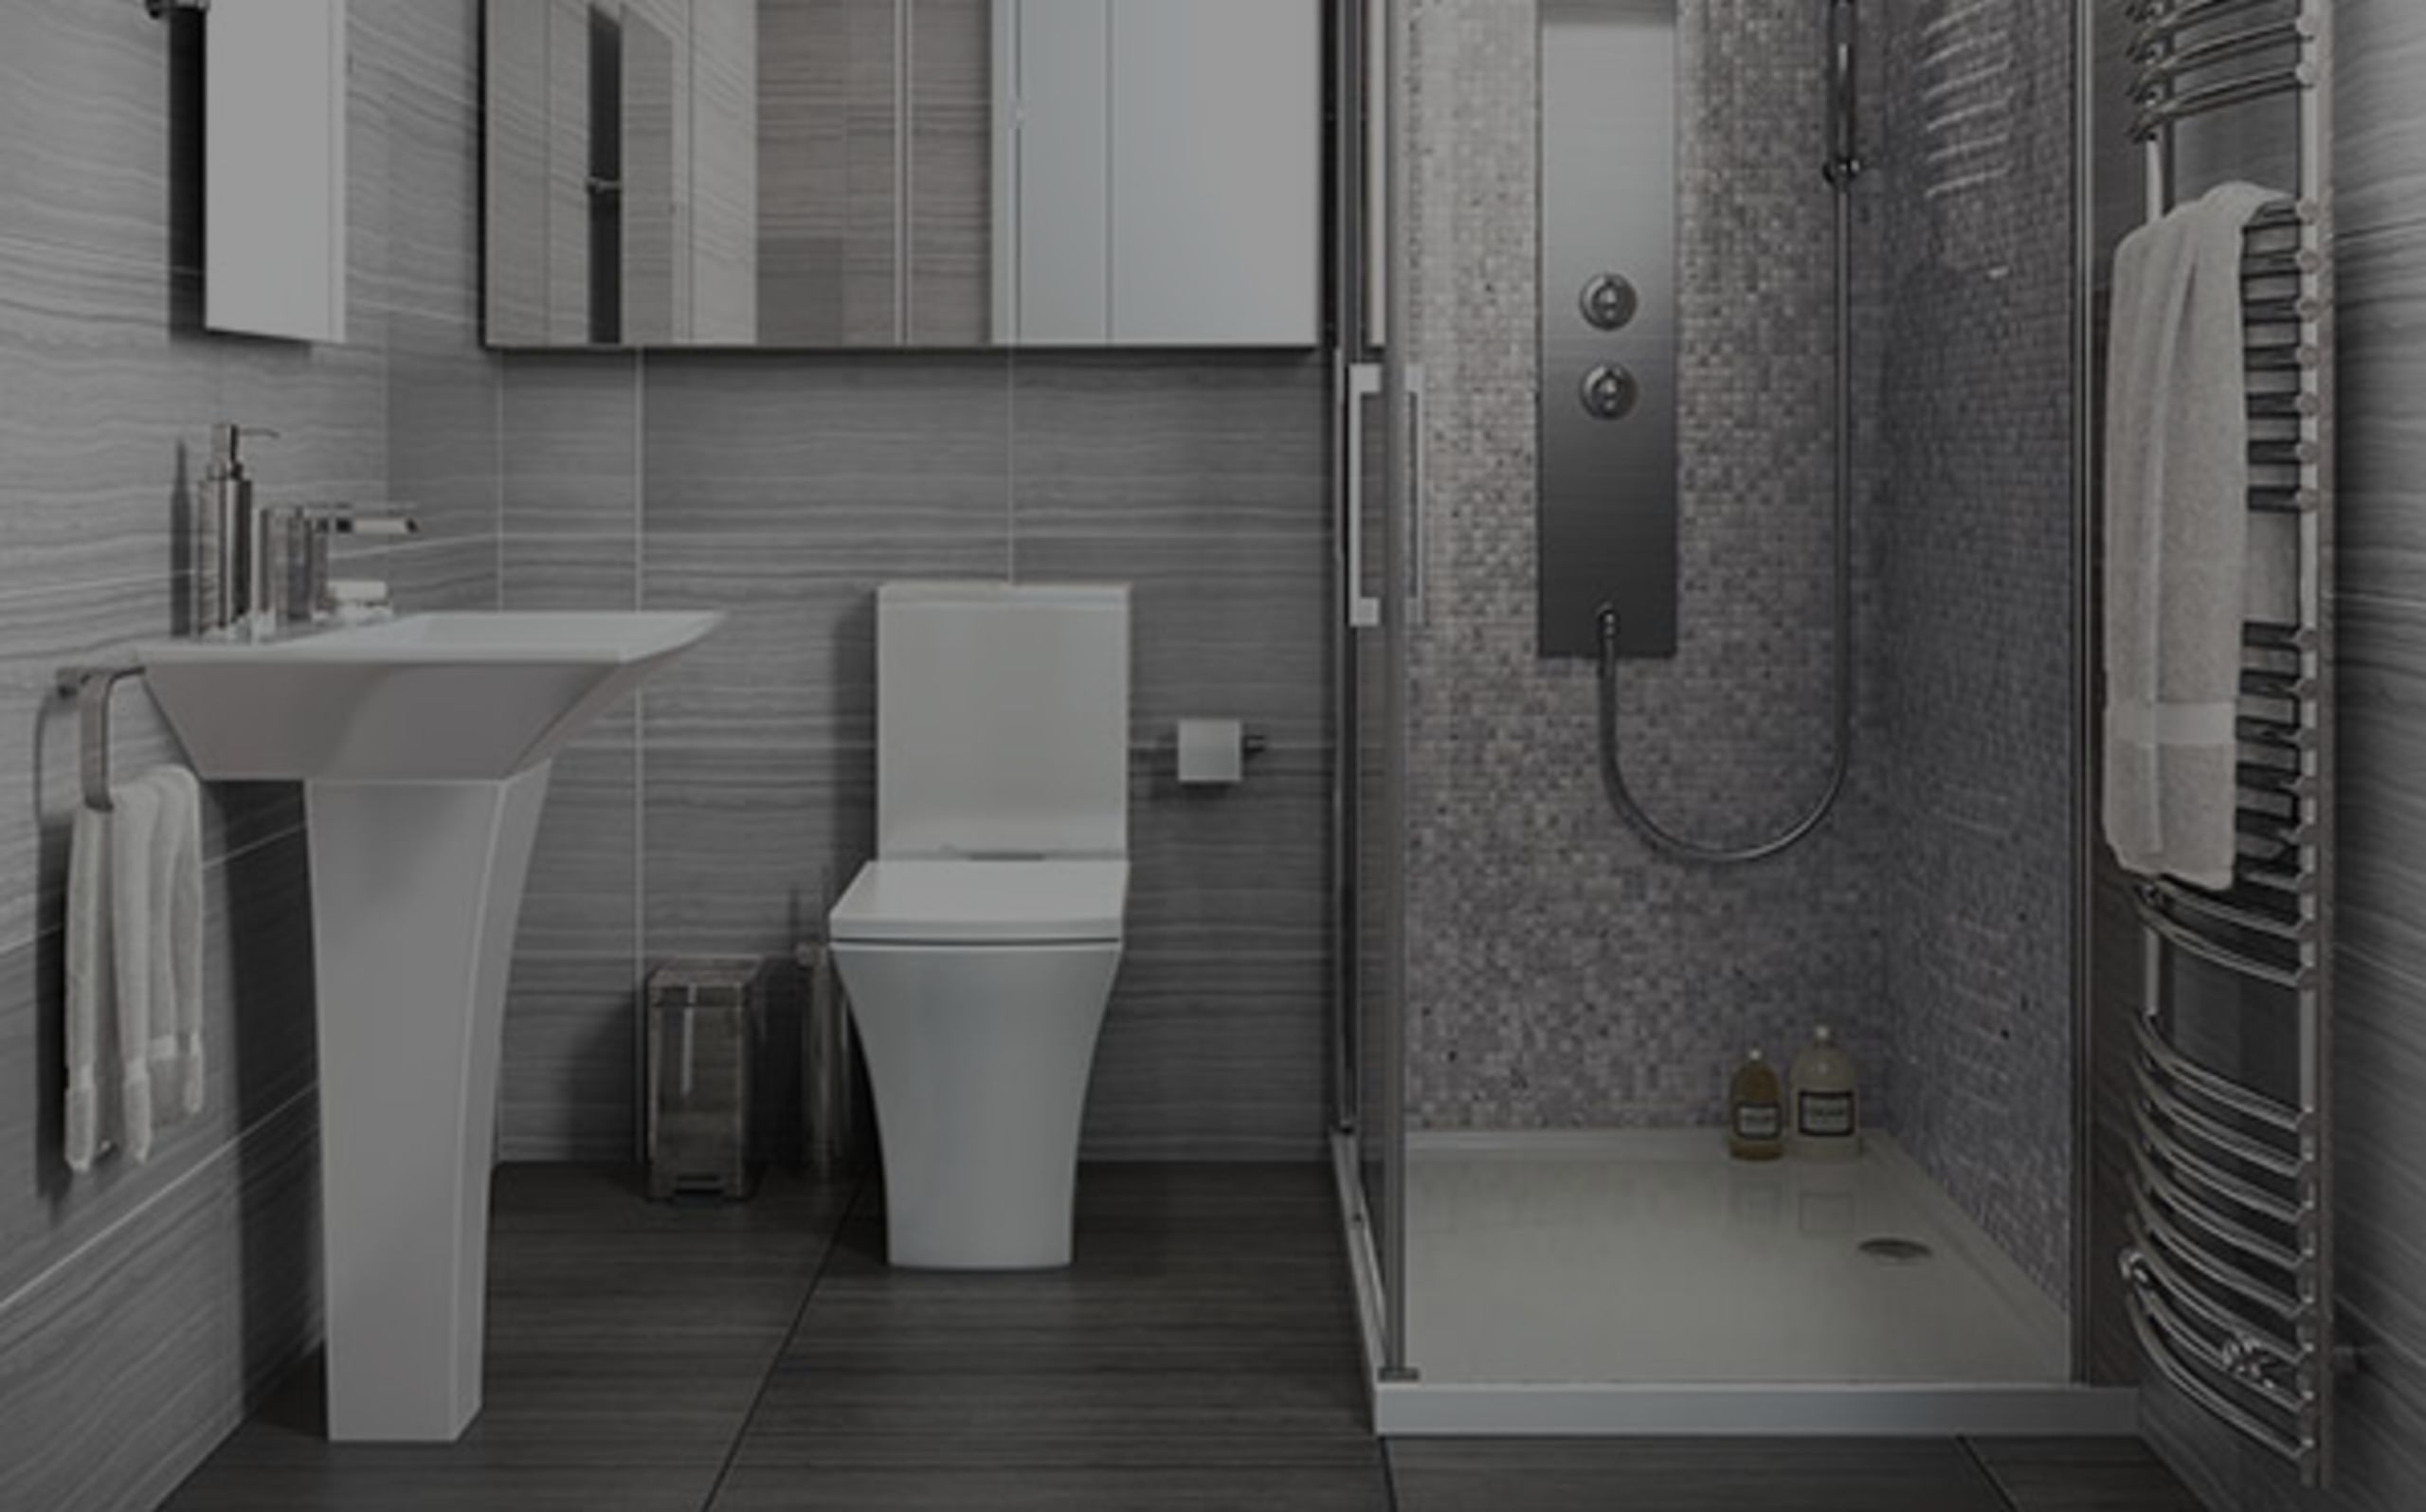 How to make your bathroom easier to clean